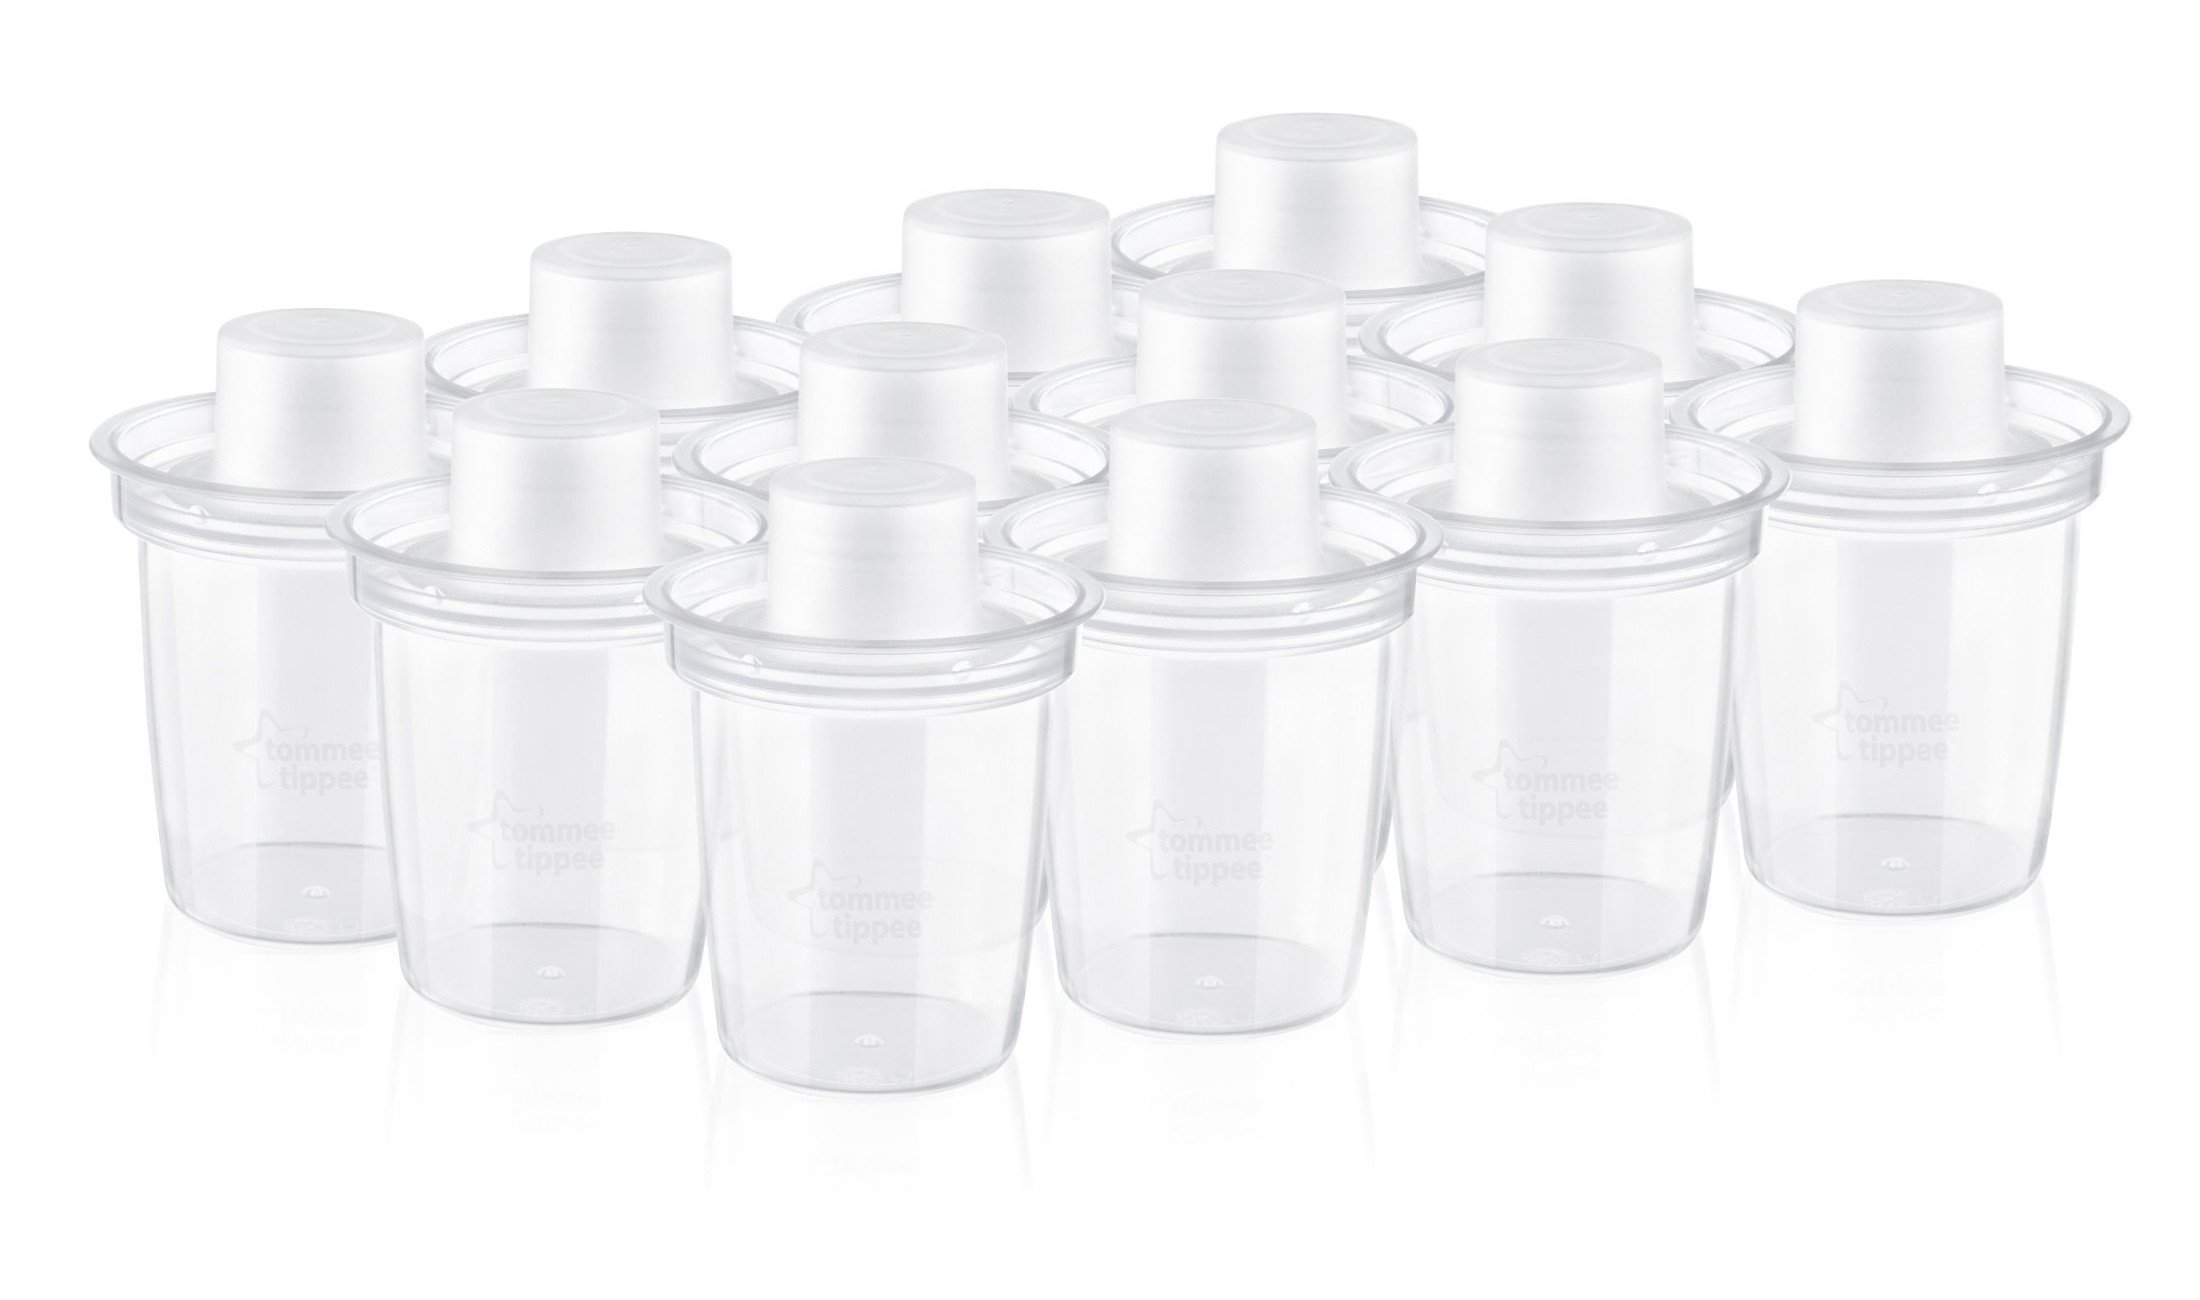 Tommee Tippee Formula Dispensers, 12-Count